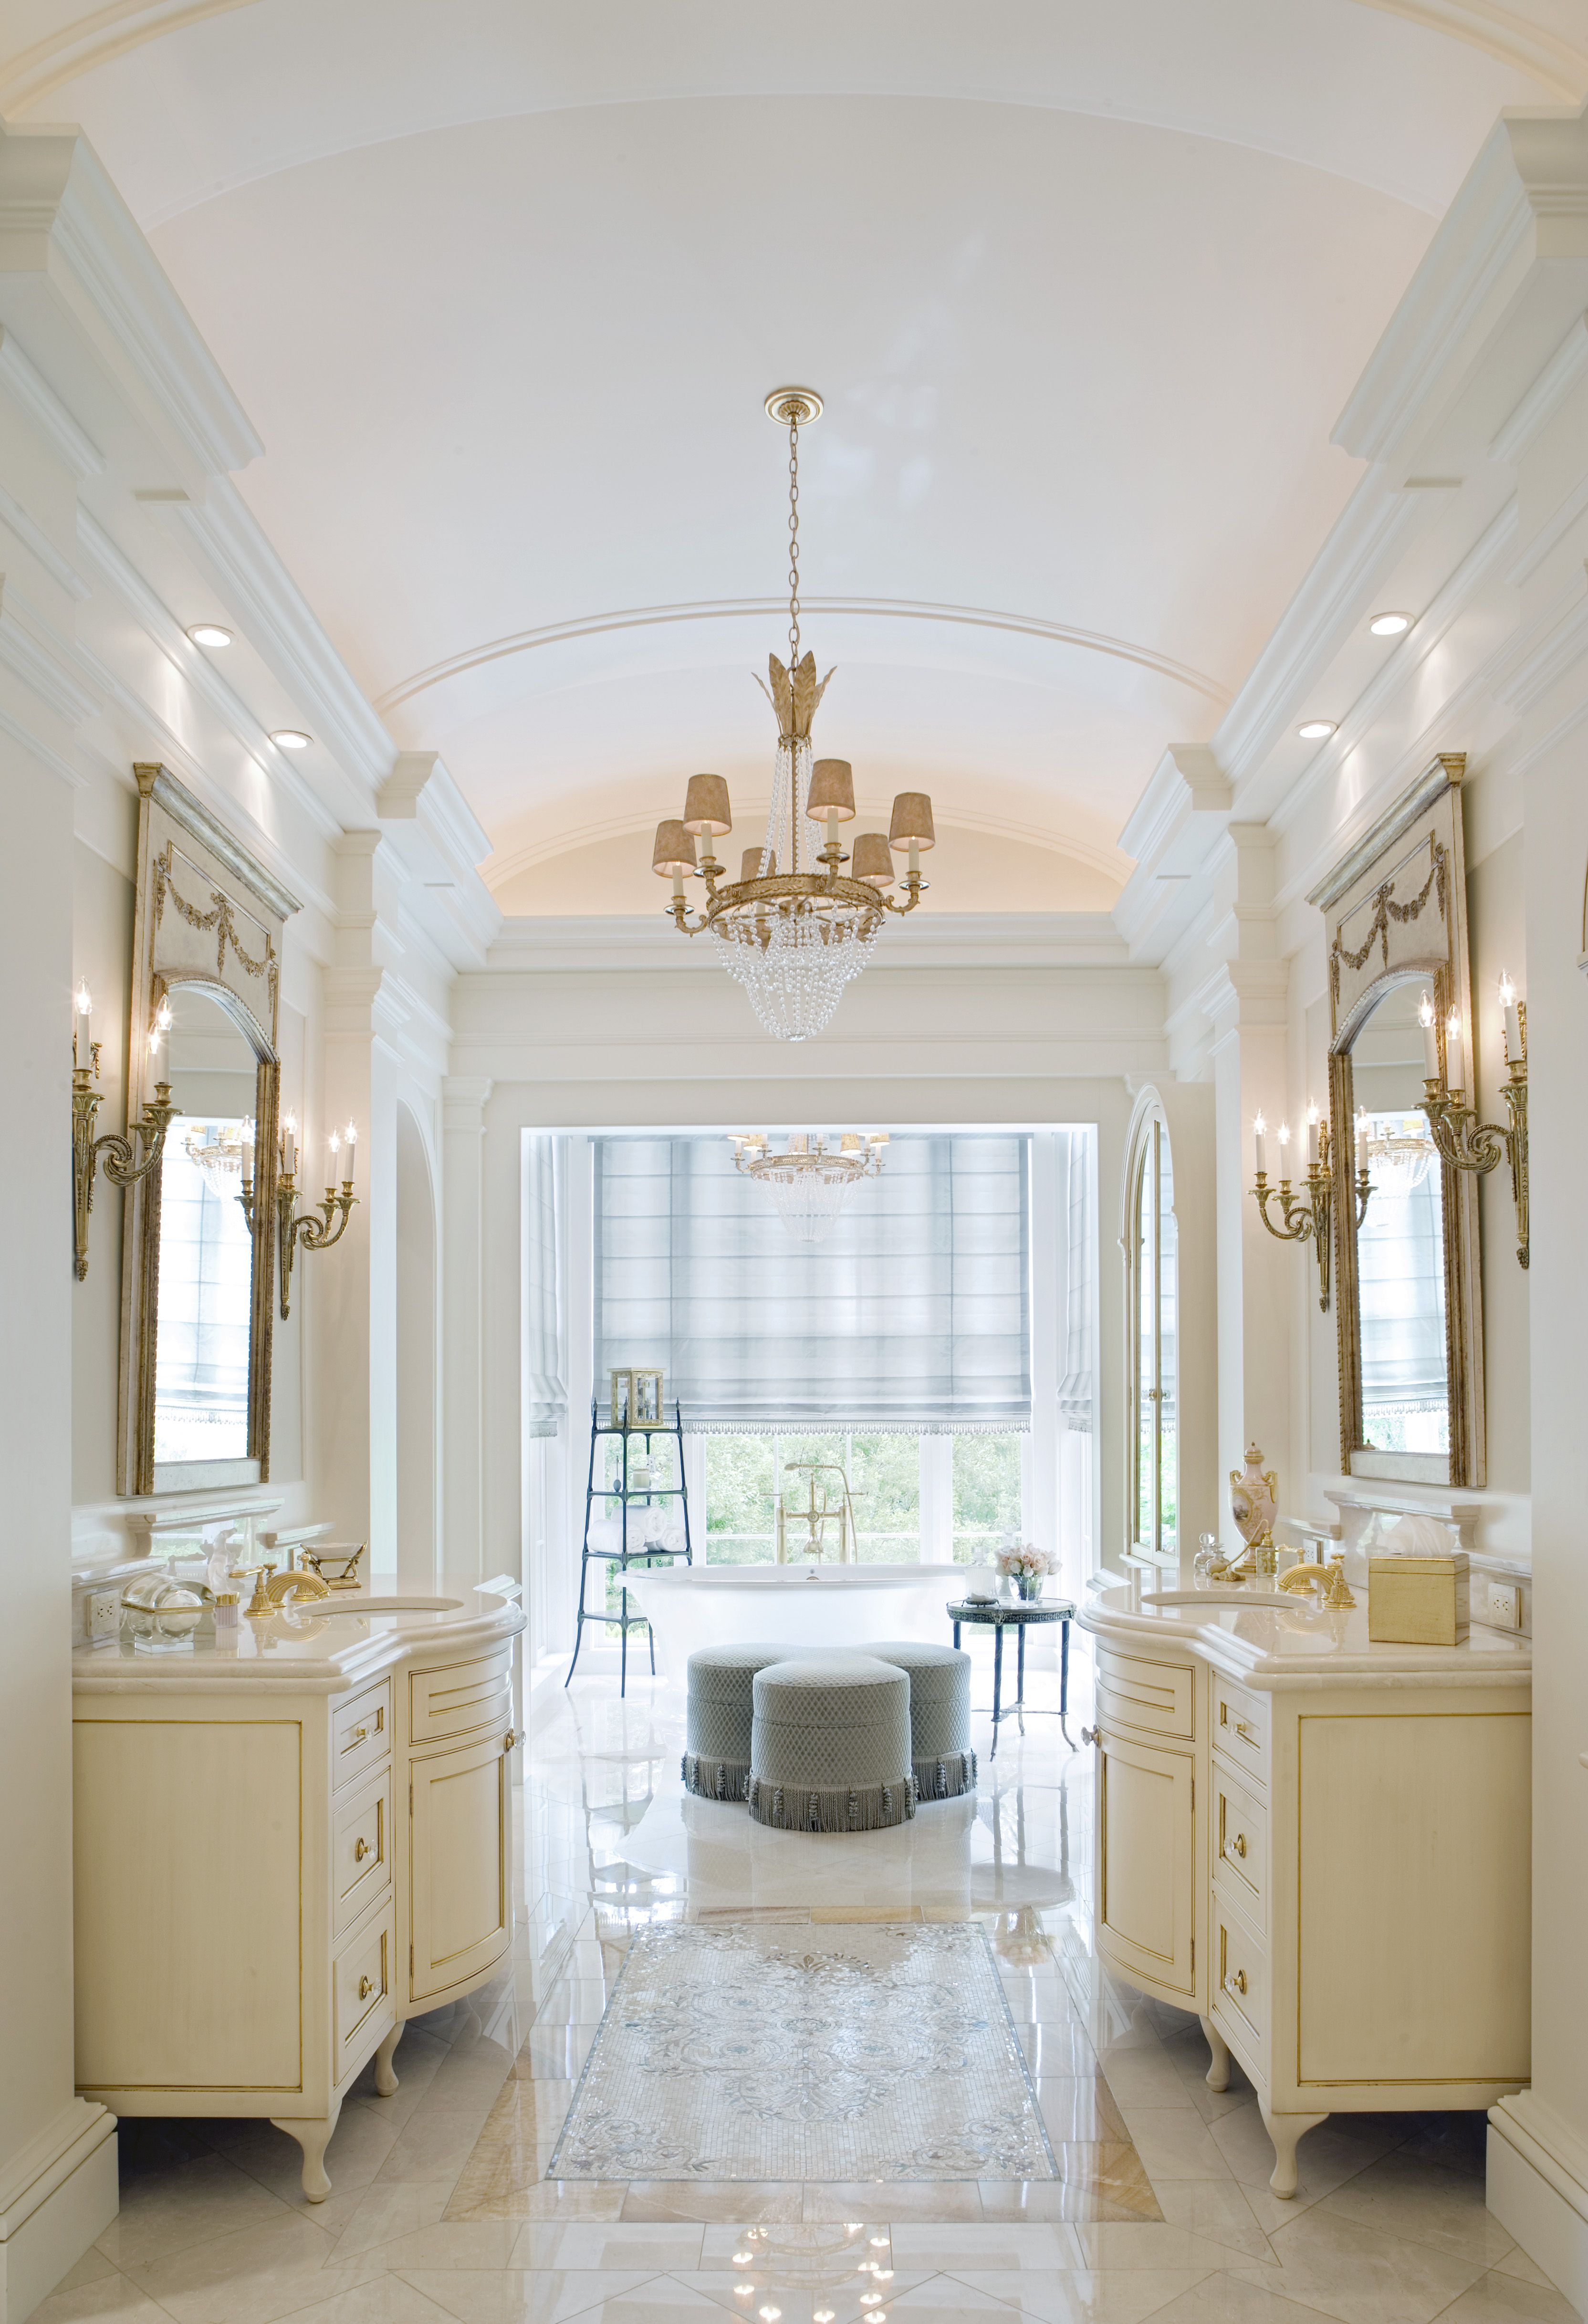 Elegant, classical bathroom | Architecture: Historical Concepts ...